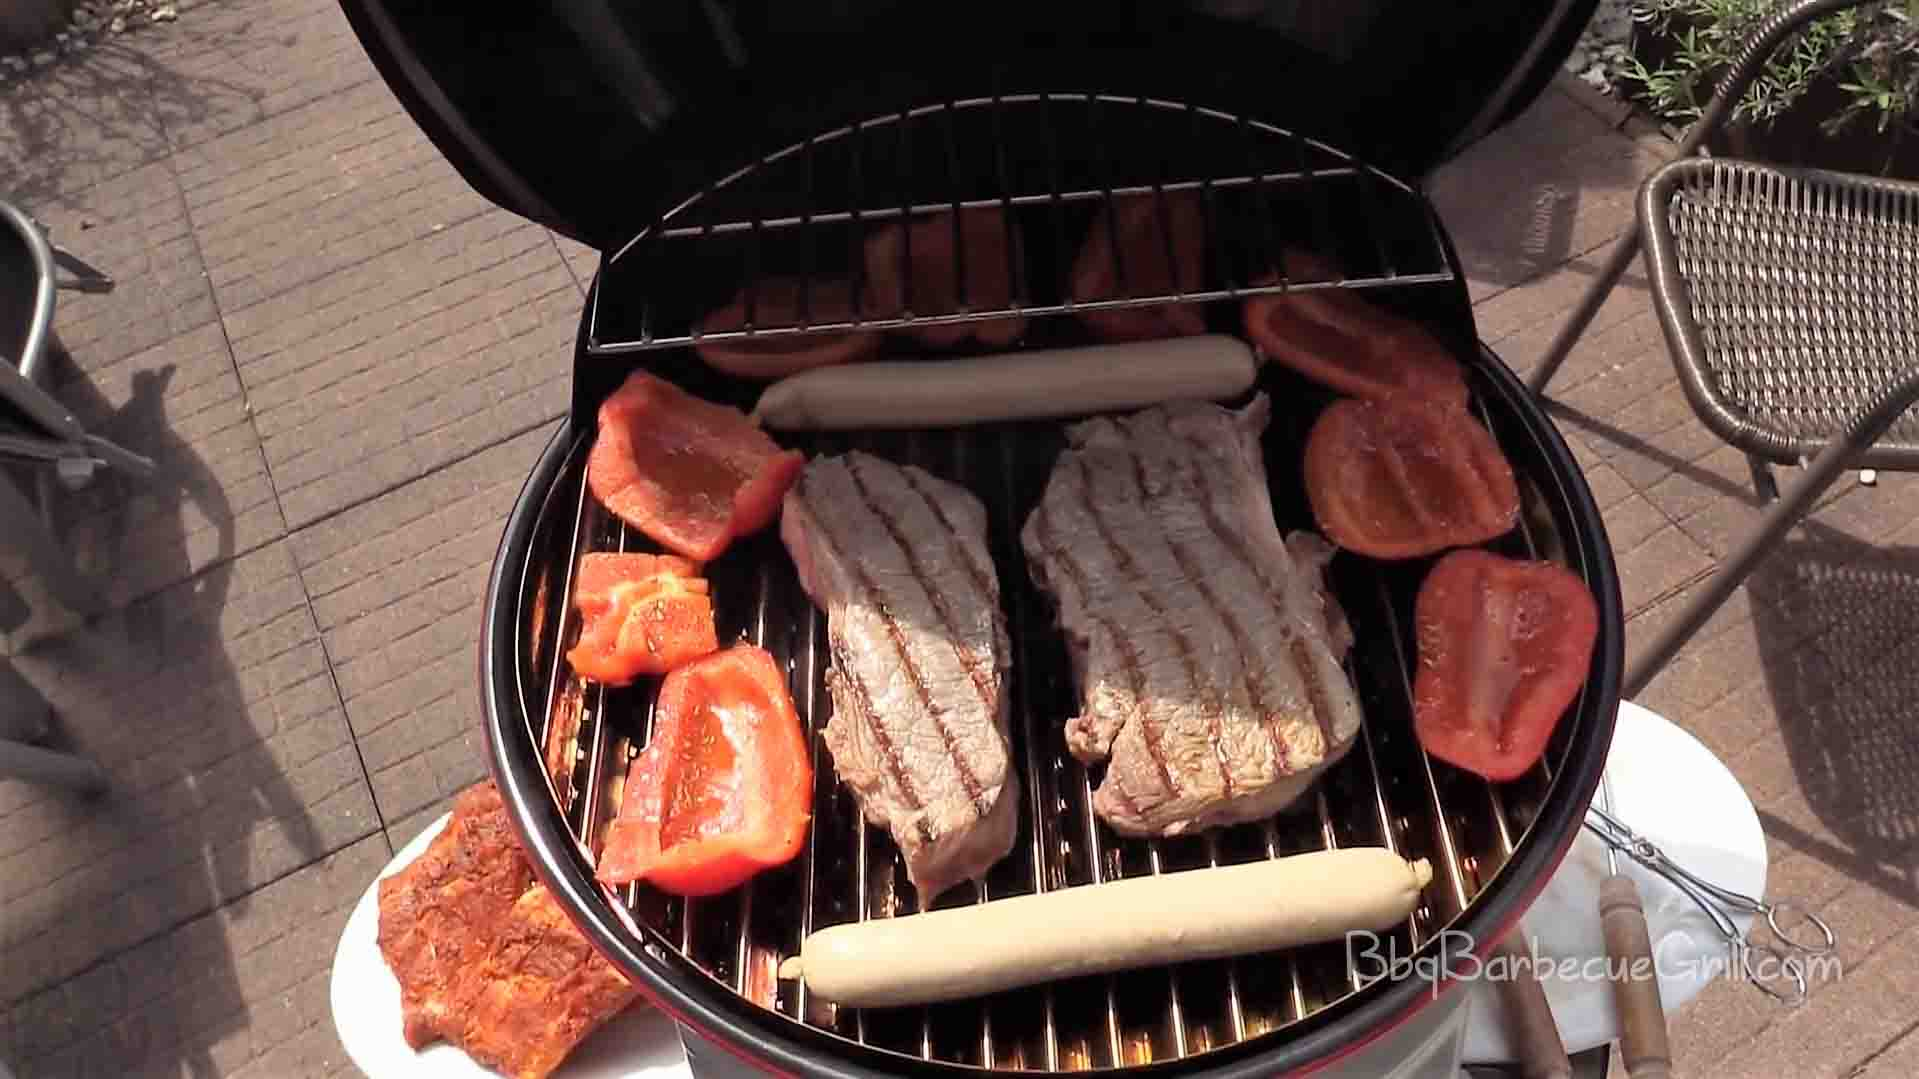 co bistro broil grate char patio patrofi veloclub cooking